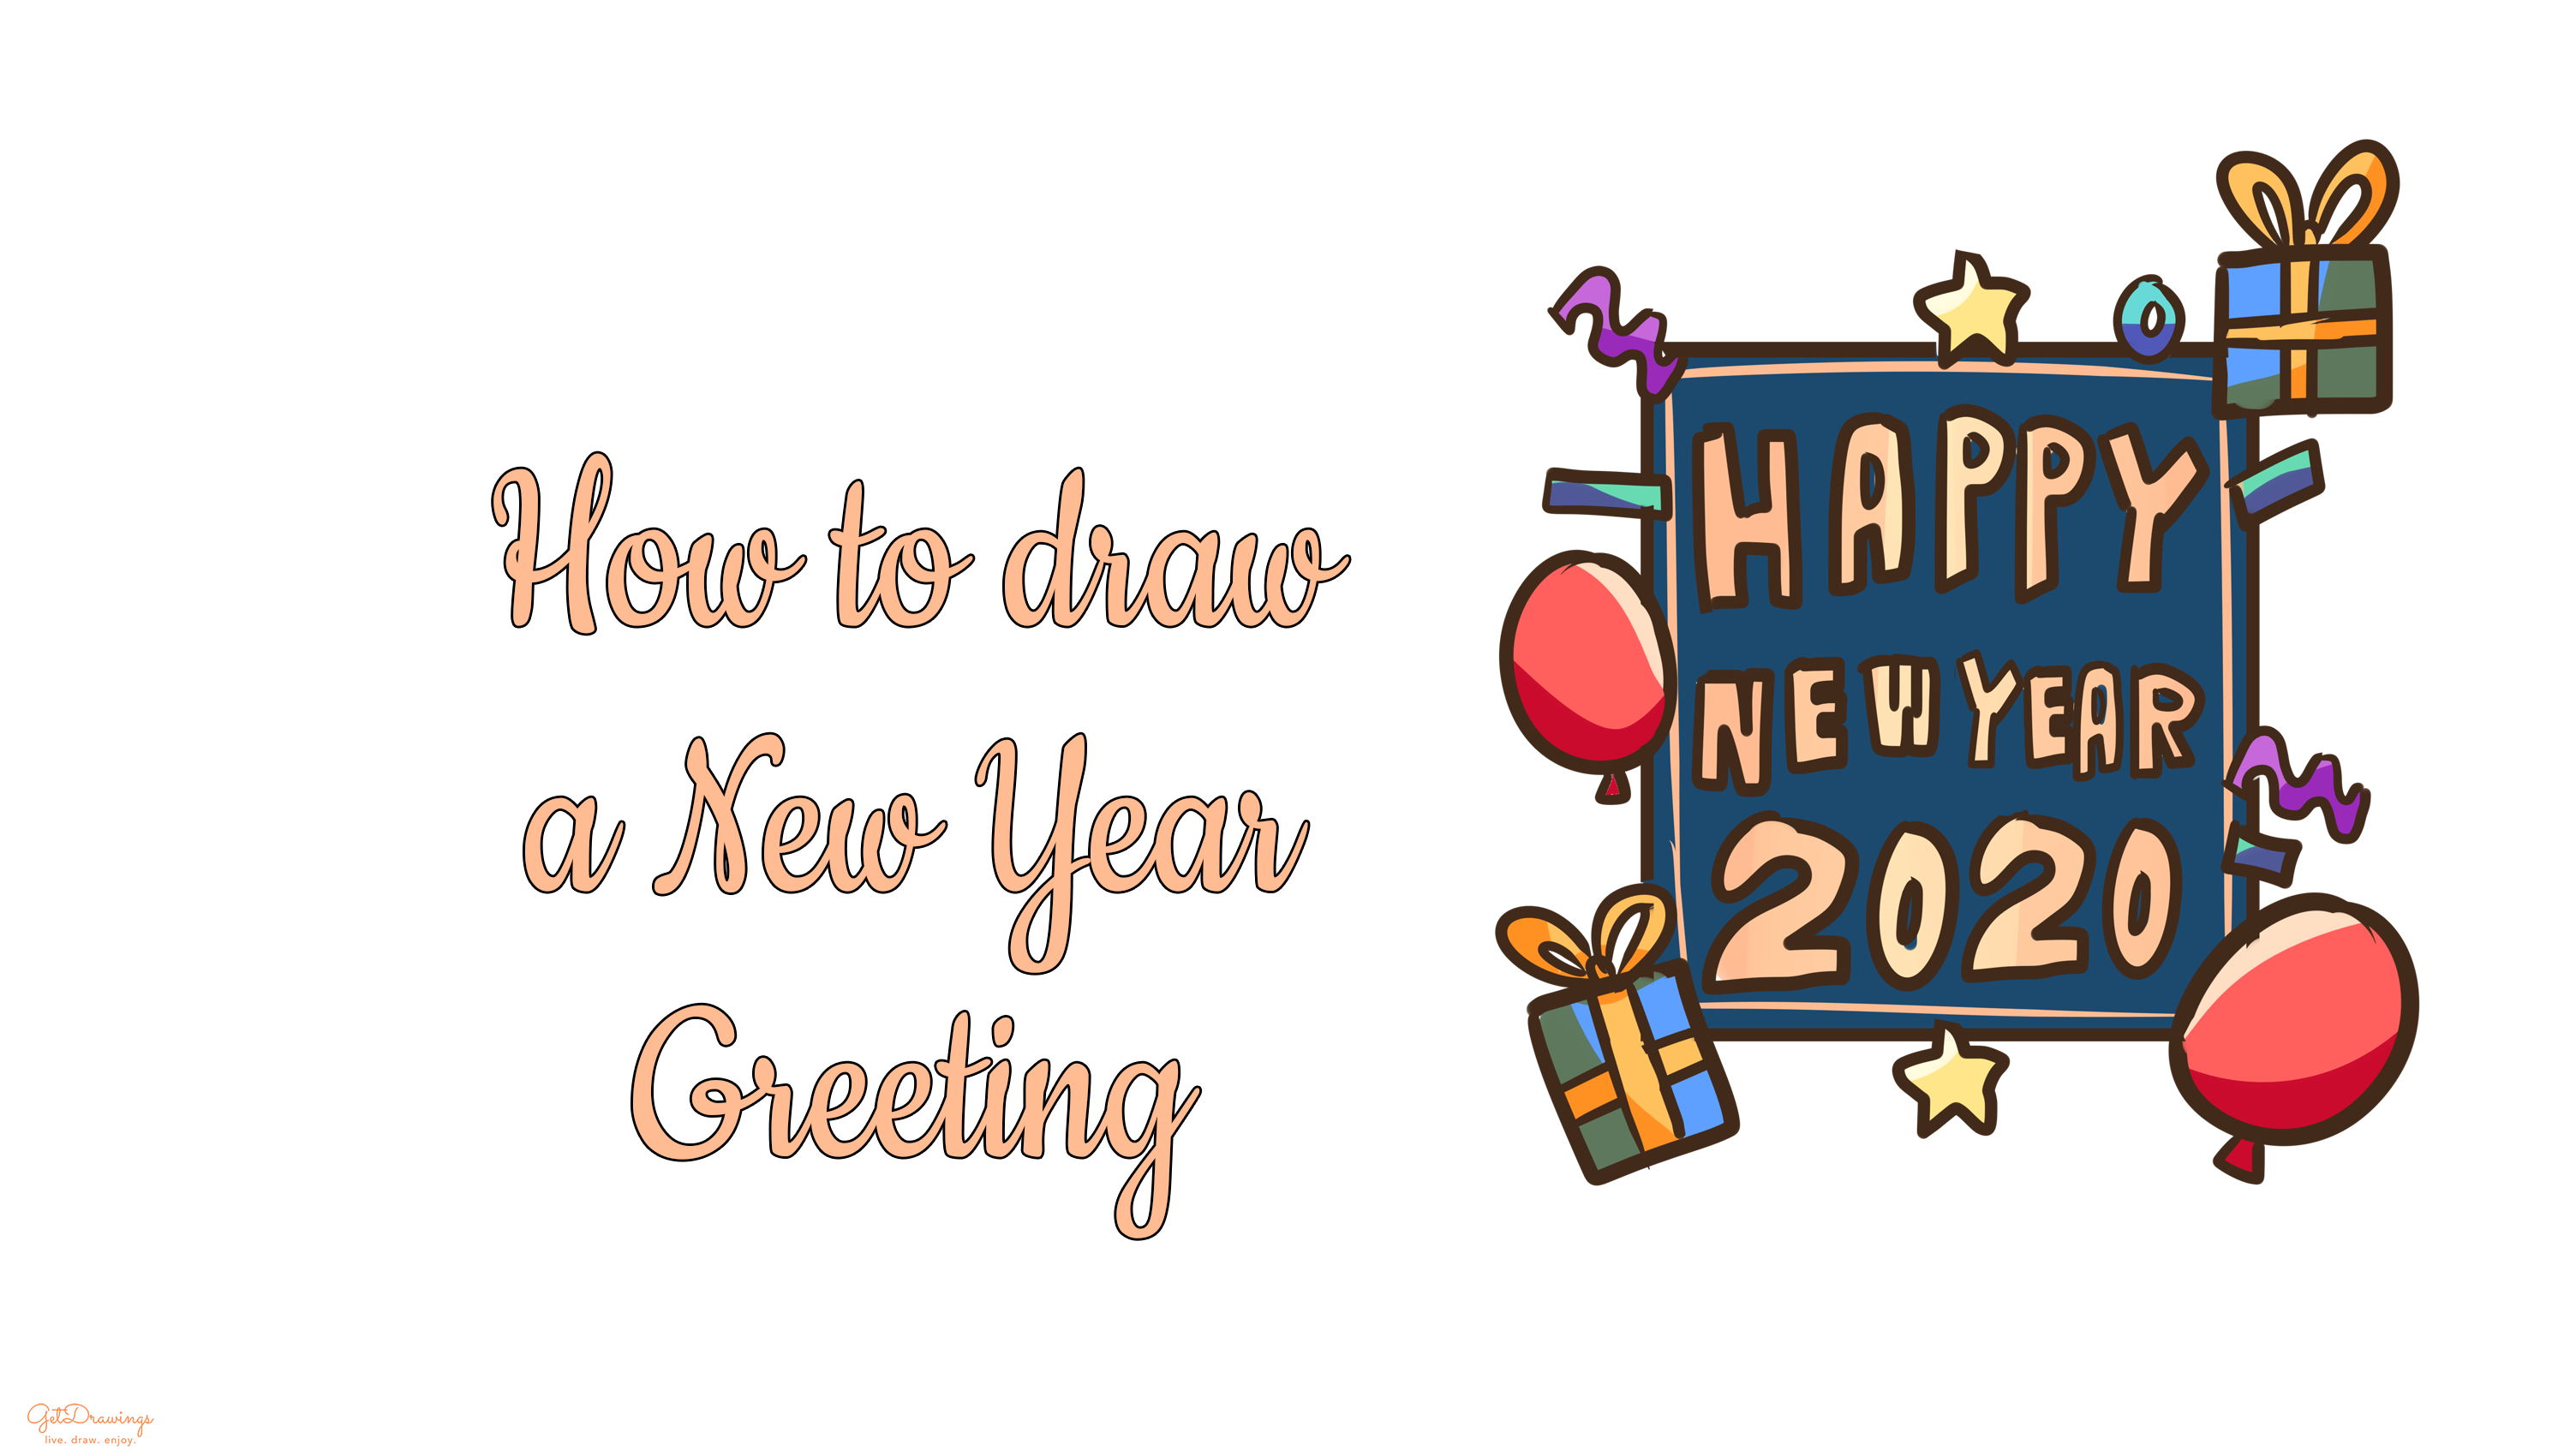 How to draw a New Year Greetings